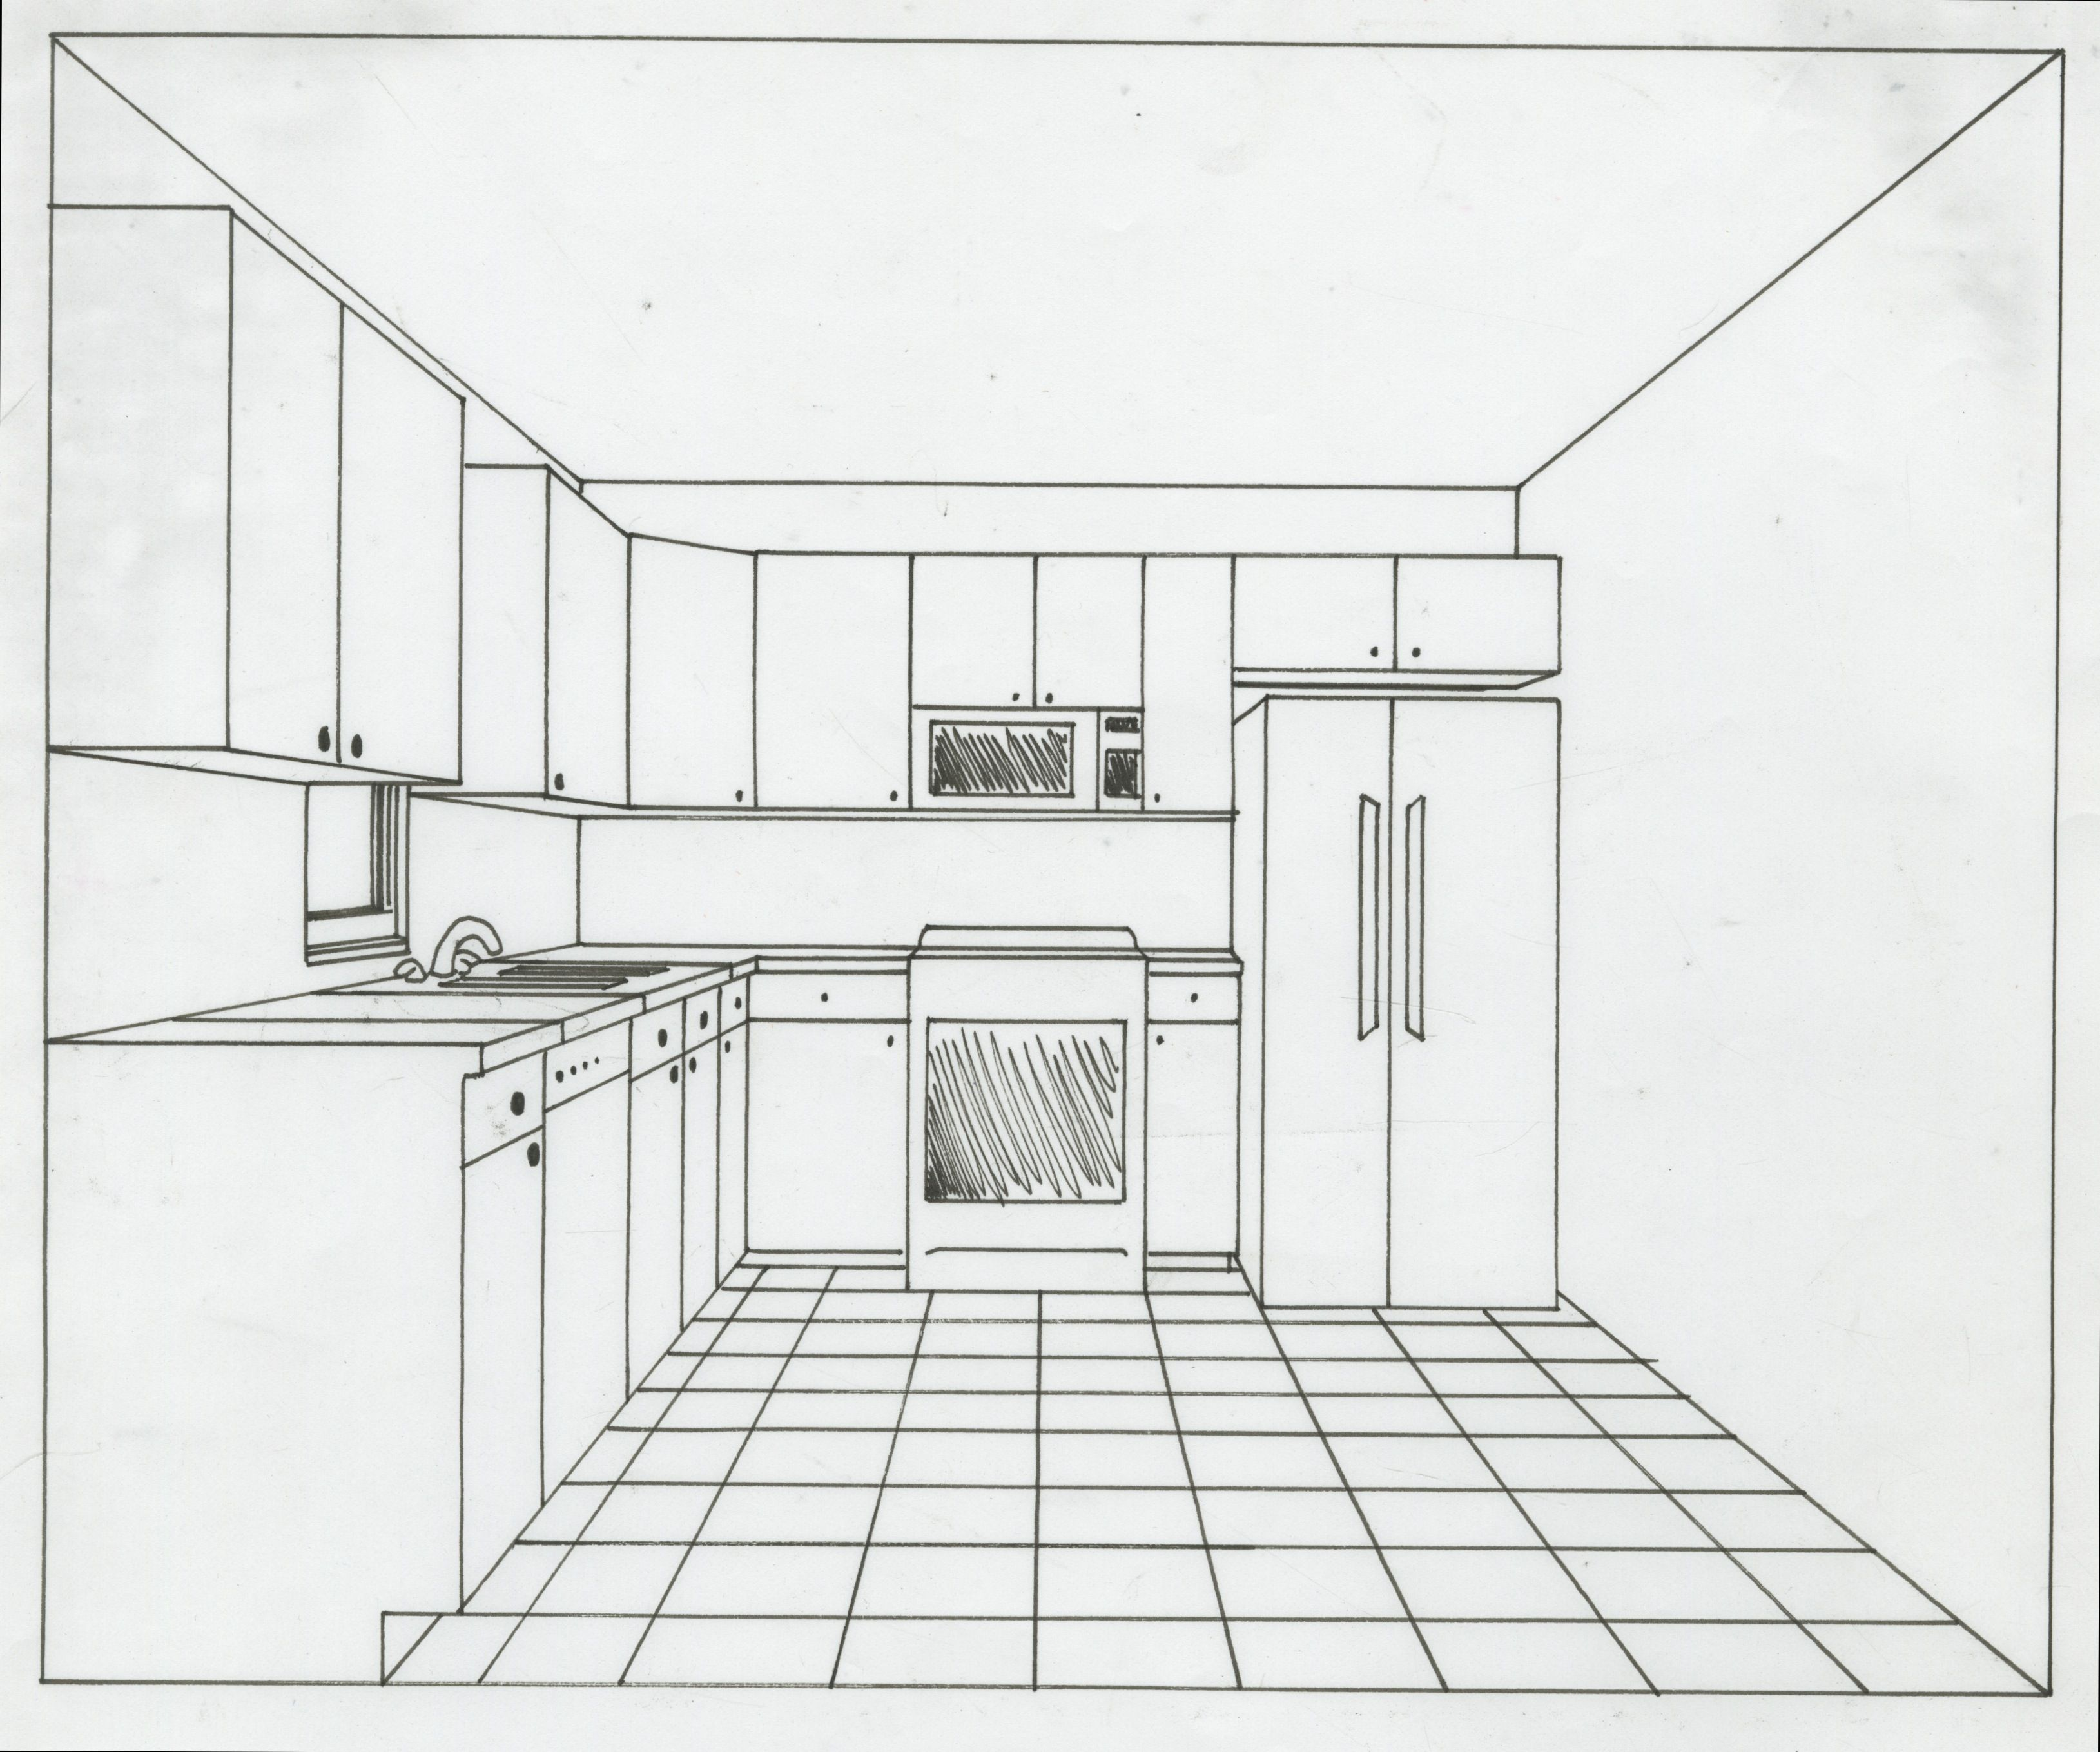 Pin By Berlot On Perspective Interior Design Sketchbook 1 Point Perspective Point Perspective